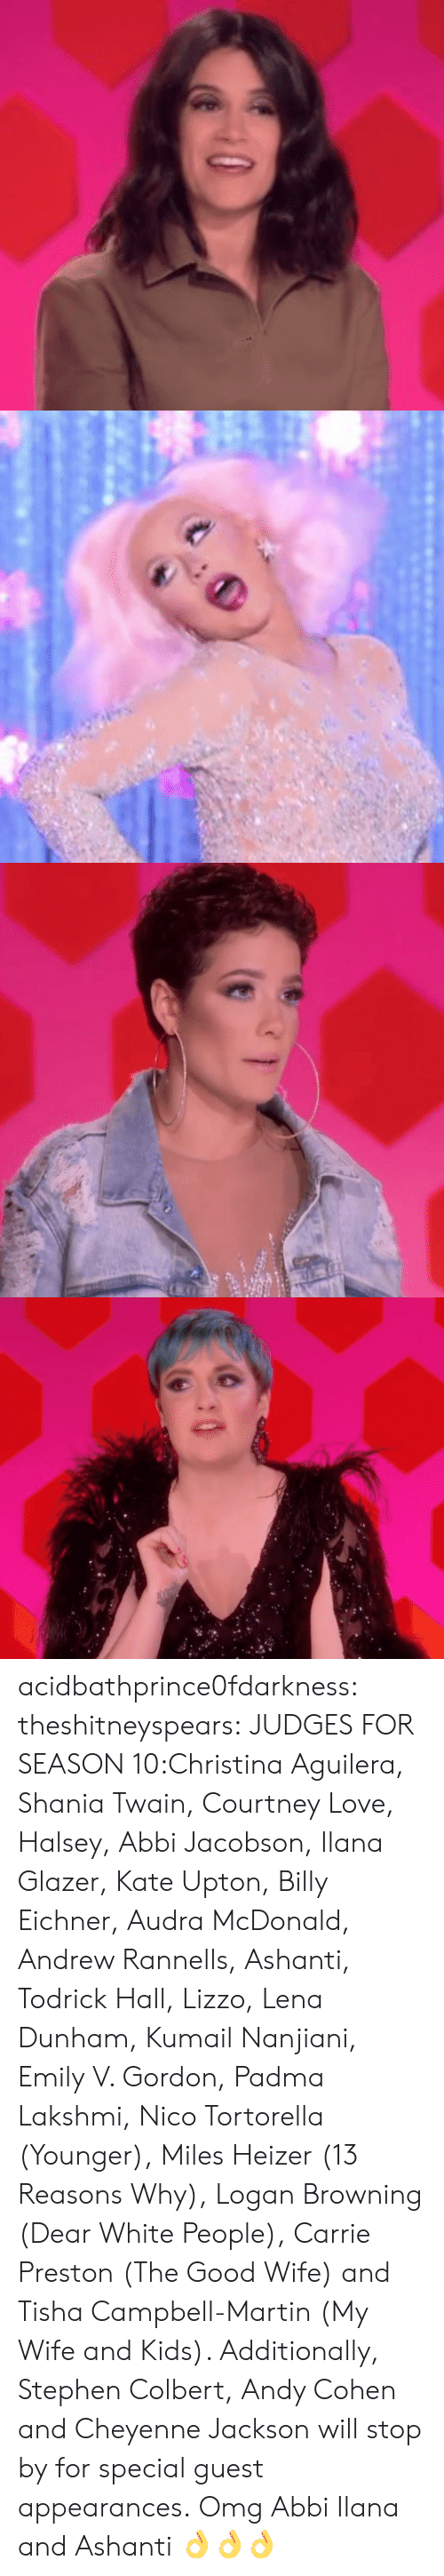 Billboard, Cheyenne Jackson, and Kate Upton: acidbathprince0fdarkness:  theshitneyspears:  JUDGES FOR SEASON 10:Christina Aguilera, Shania Twain, Courtney Love, Halsey, Abbi Jacobson, Ilana Glazer, Kate Upton, Billy Eichner, Audra McDonald, Andrew Rannells, Ashanti, Todrick Hall, Lizzo, Lena Dunham, Kumail Nanjiani, Emily V. Gordon, Padma Lakshmi, Nico Tortorella (Younger), Miles Heizer (13 Reasons Why), Logan Browning (Dear White People), Carrie Preston (The Good Wife) and Tisha Campbell-Martin (My Wife and Kids). Additionally, Stephen Colbert, Andy Cohen and Cheyenne Jackson will stop by for special guest appearances.  Omg Abbi  Ilana and Ashanti 👌👌👌